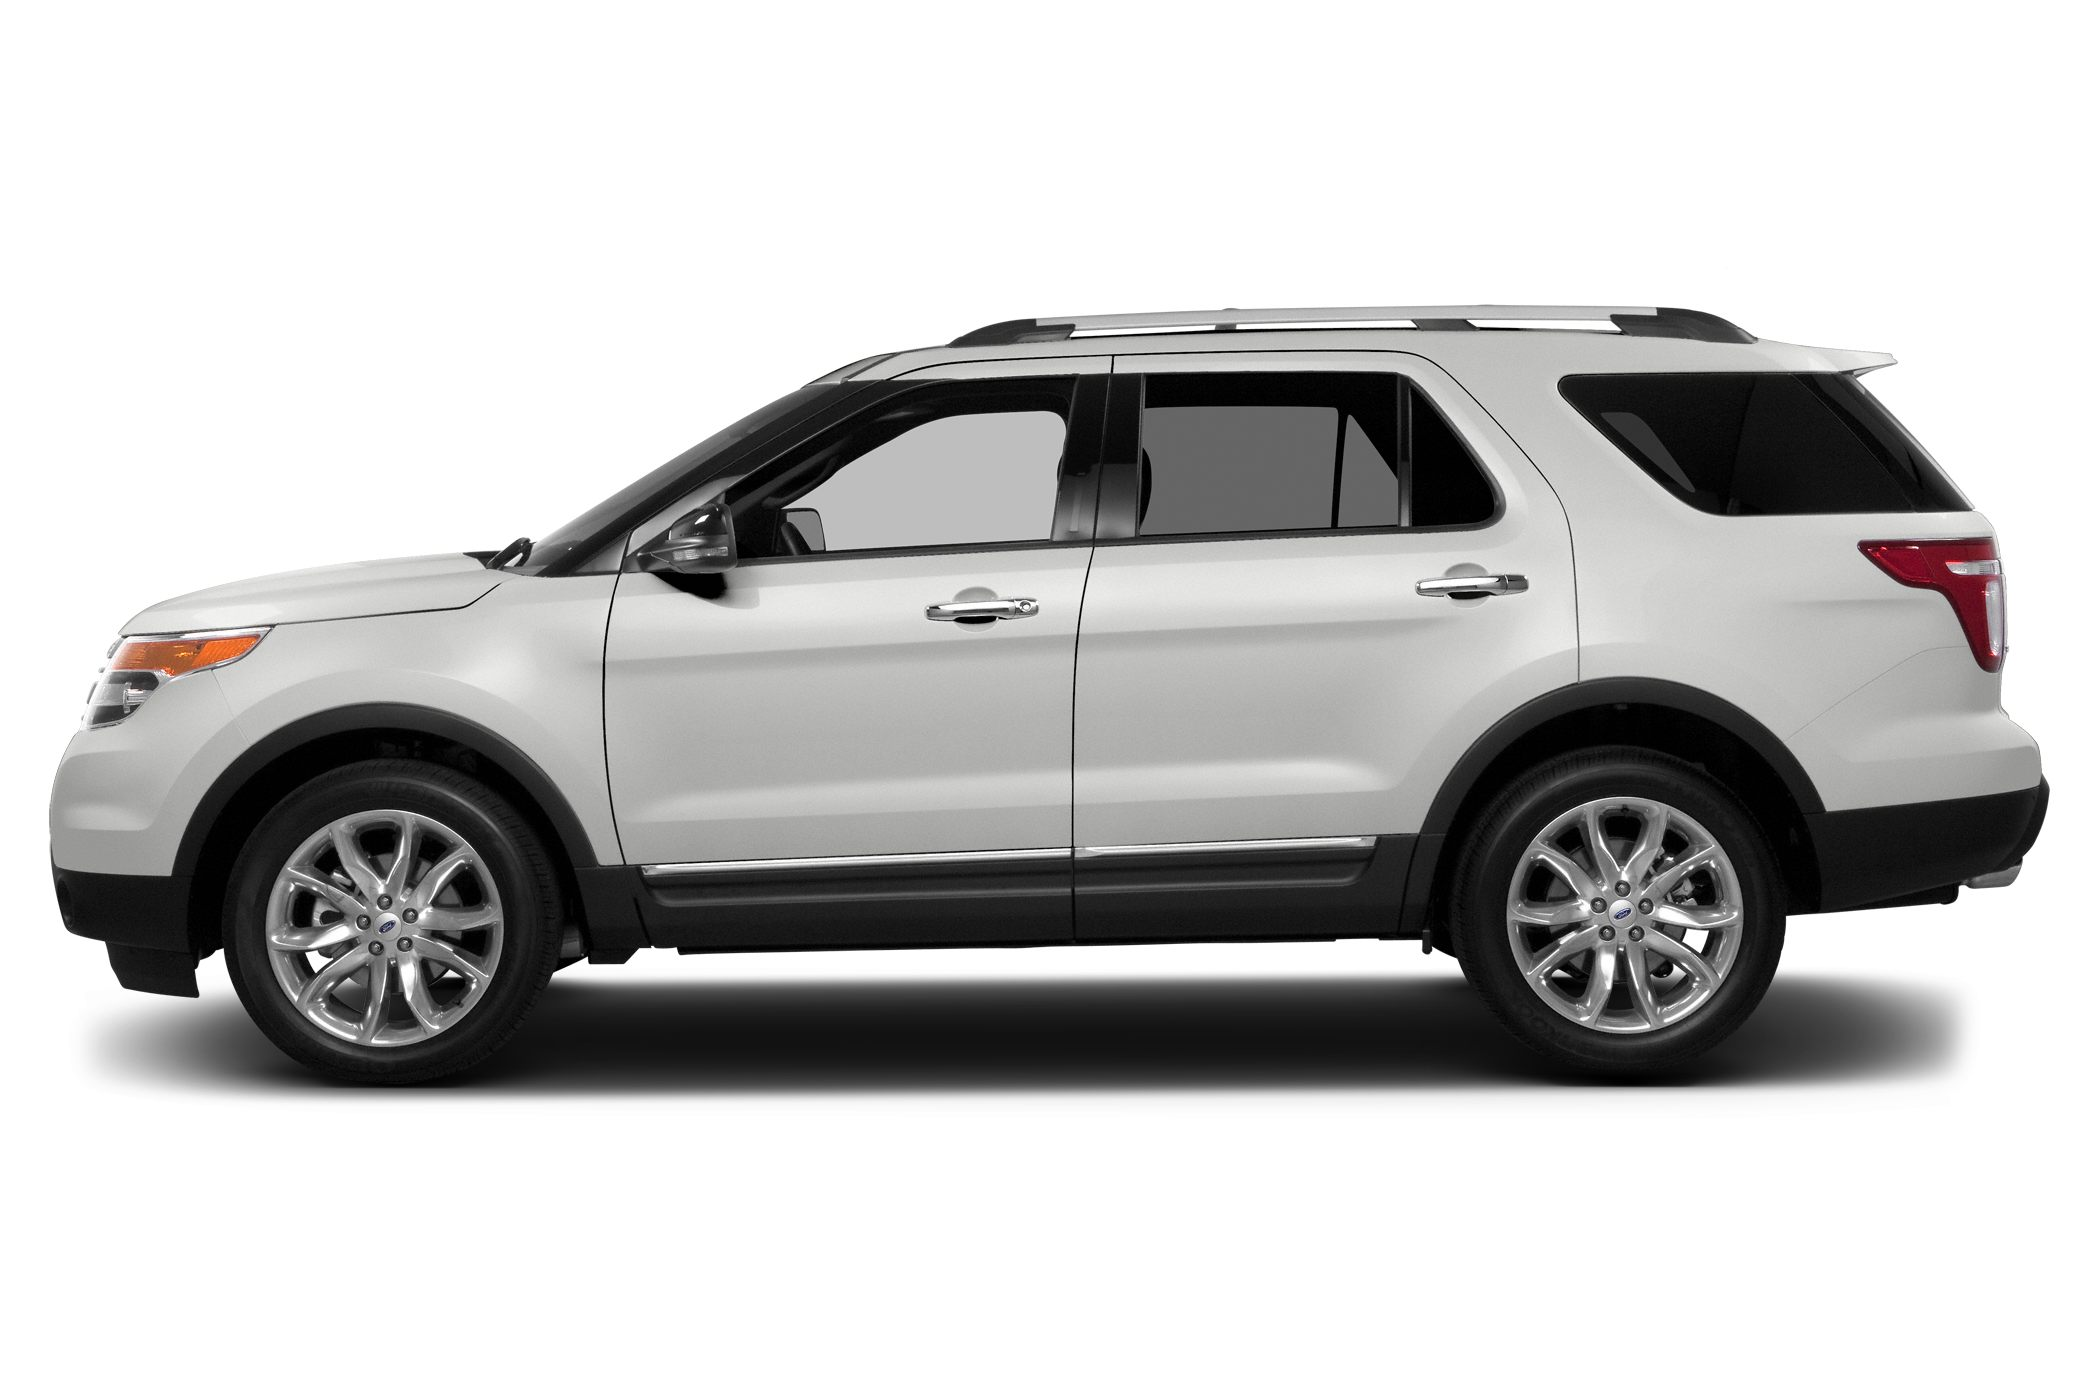 used 2015 ford explorer xlt inventory vehicle details at bob thomas ford inc your hamden connecticut ford dealer